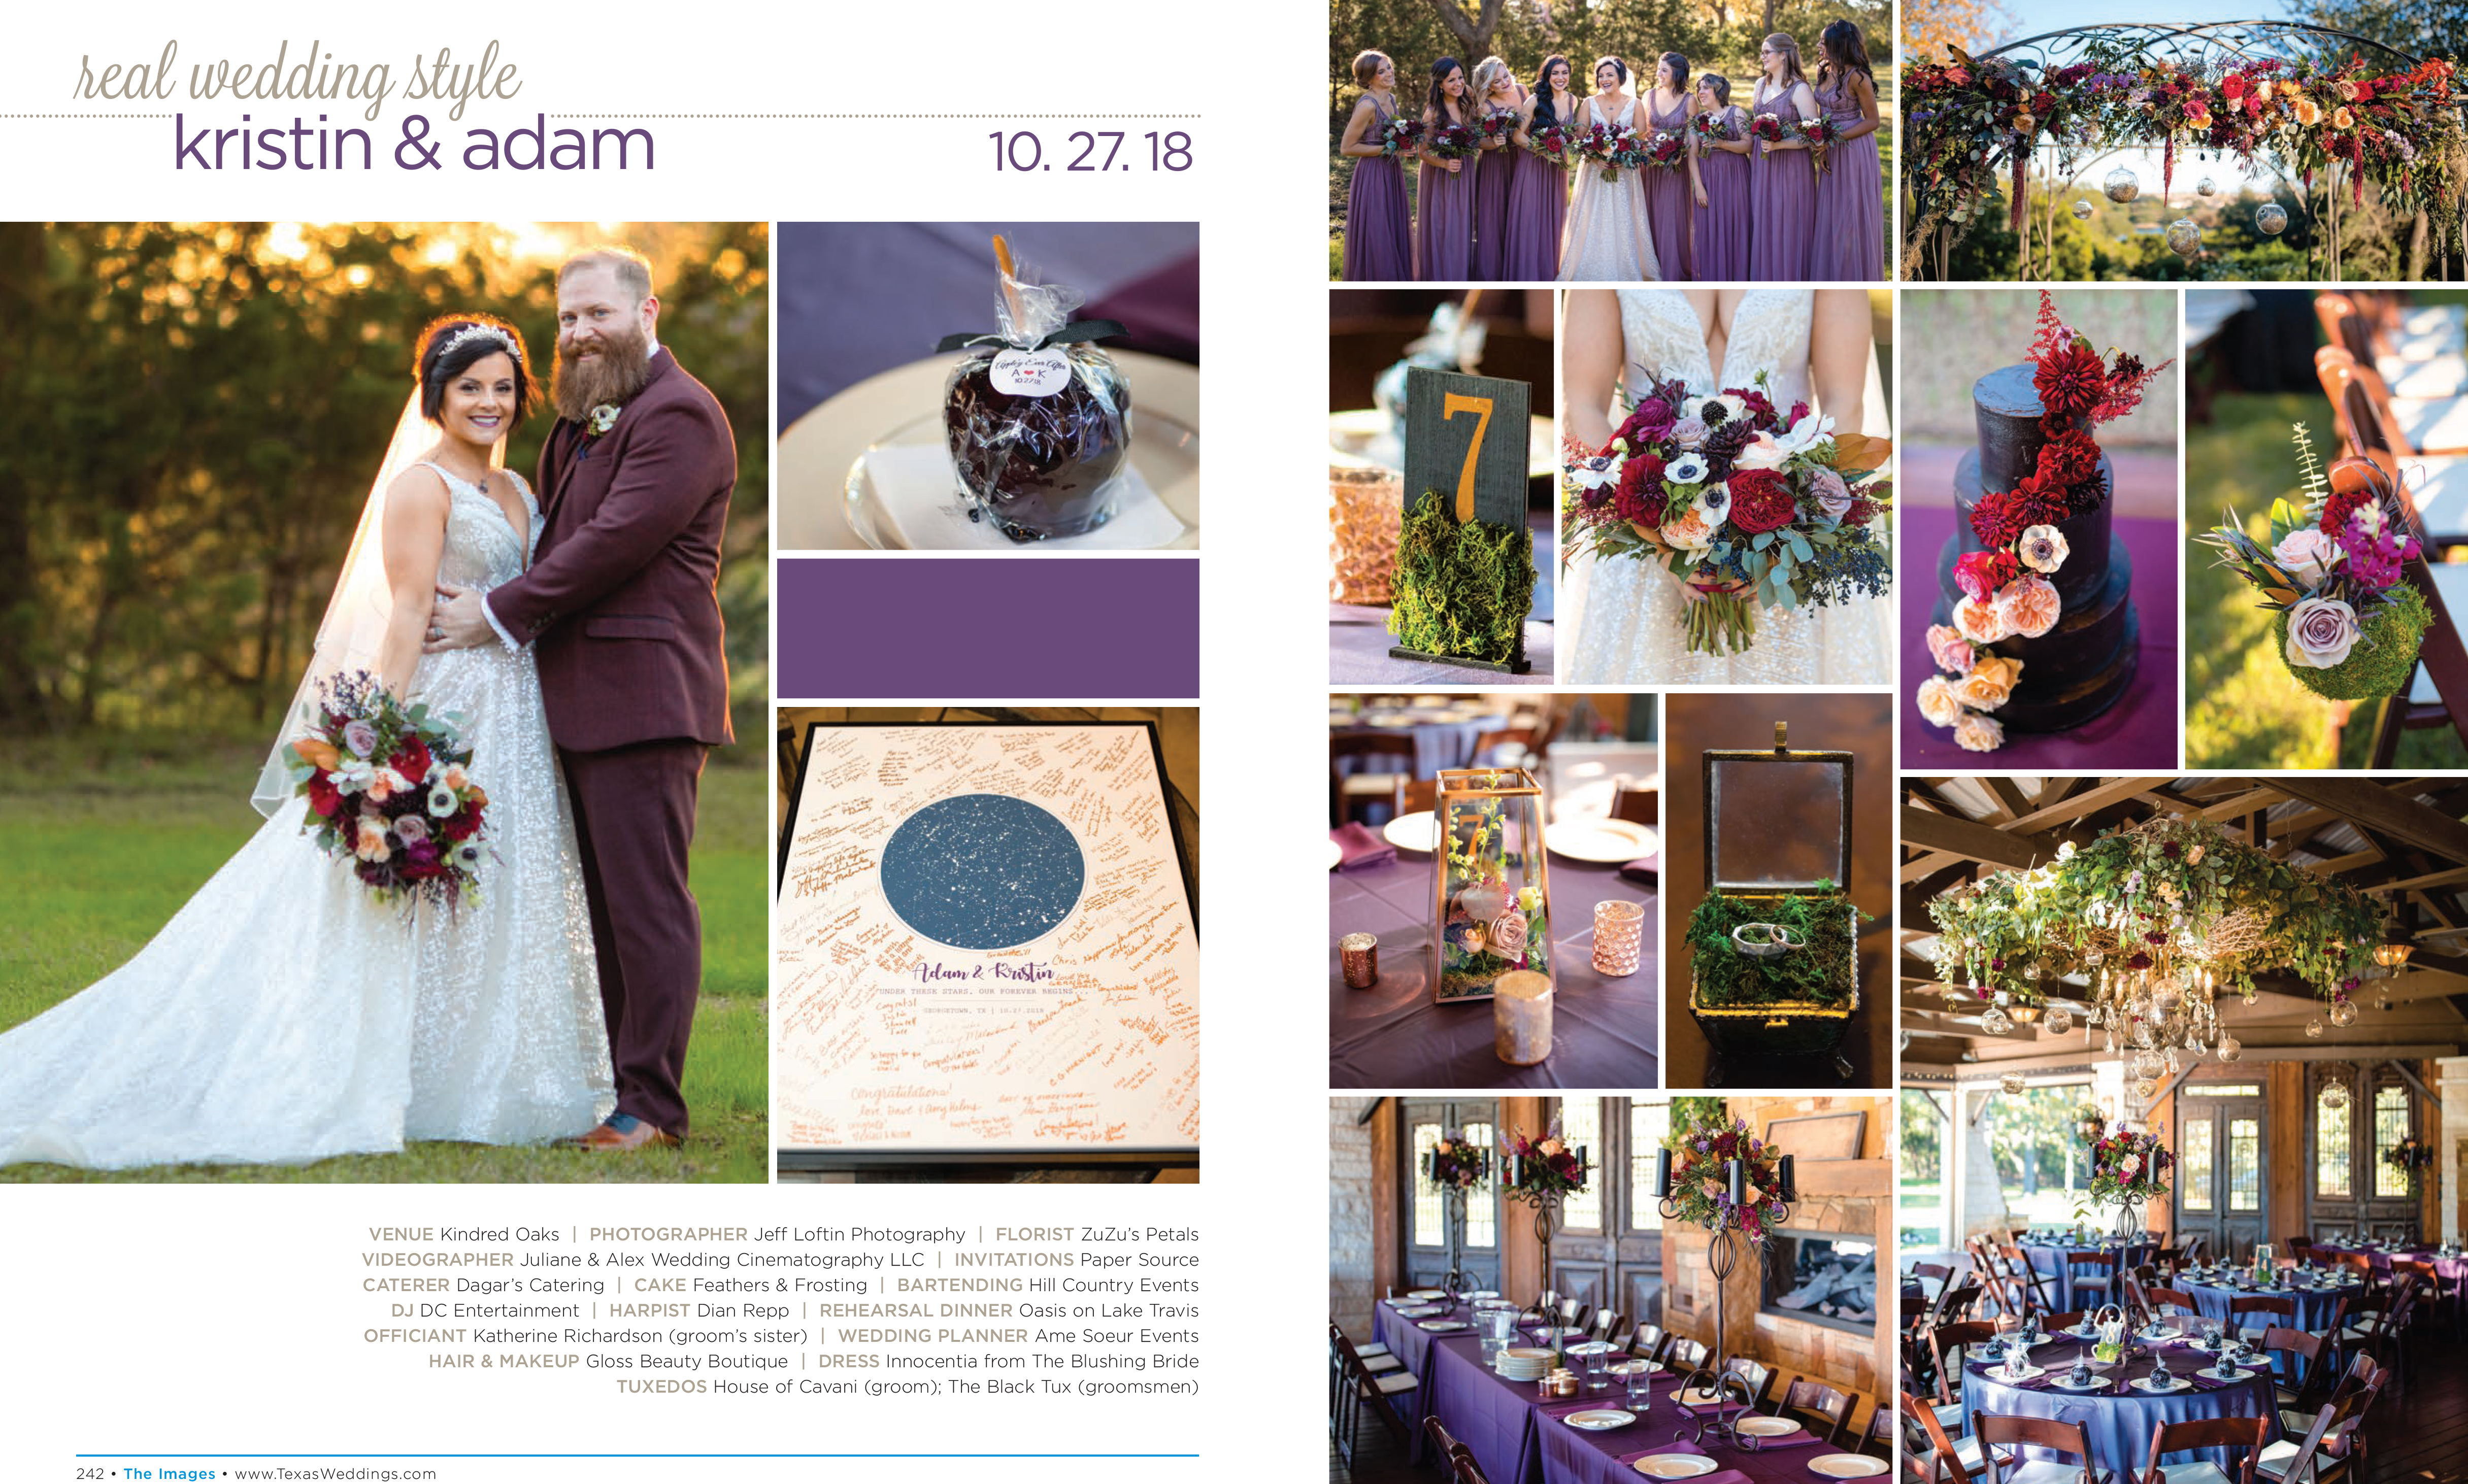 Kristin & Adam in their Real Wedding Page in the Spring/Summer 2019 Texas Wedding Guide